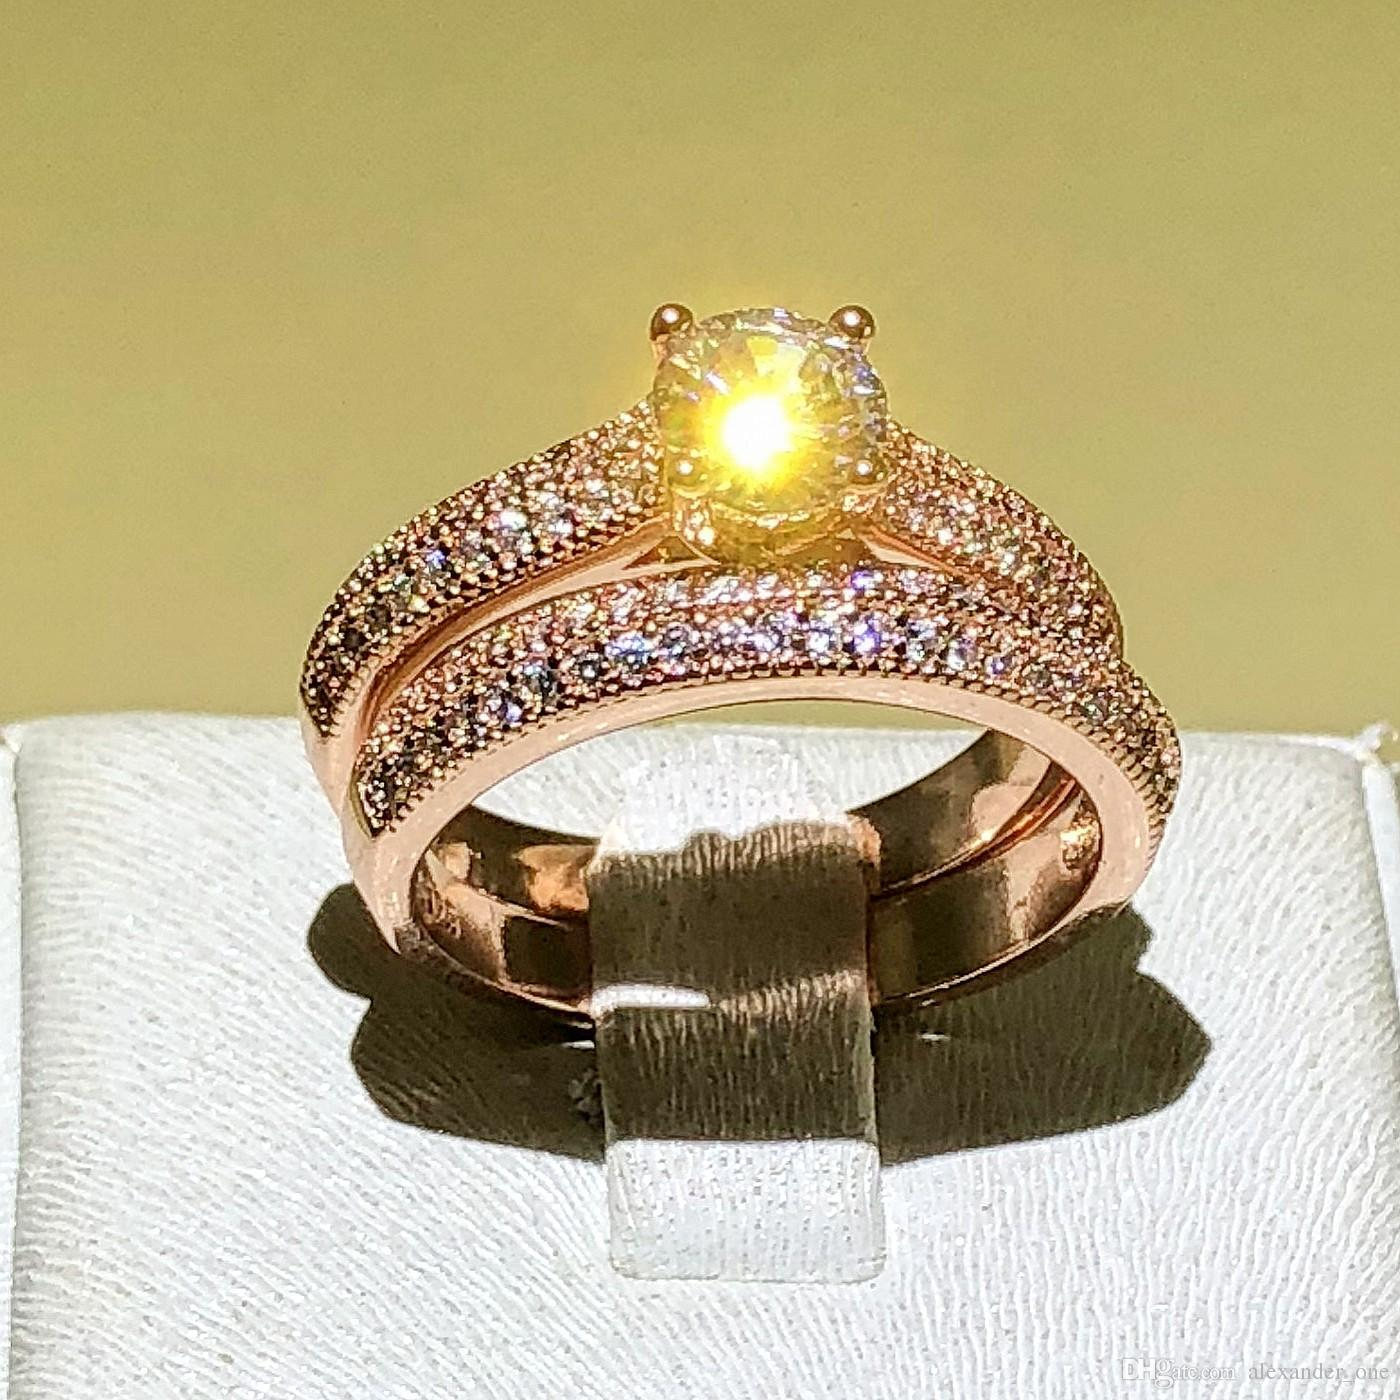 7b77222cdca6b Fine Jewelry Solitaire Wedding Ring for Women Love Forever 925 Silver Rose  Gold Color CZ anillos mujer Stacking Rings Set size 4-12